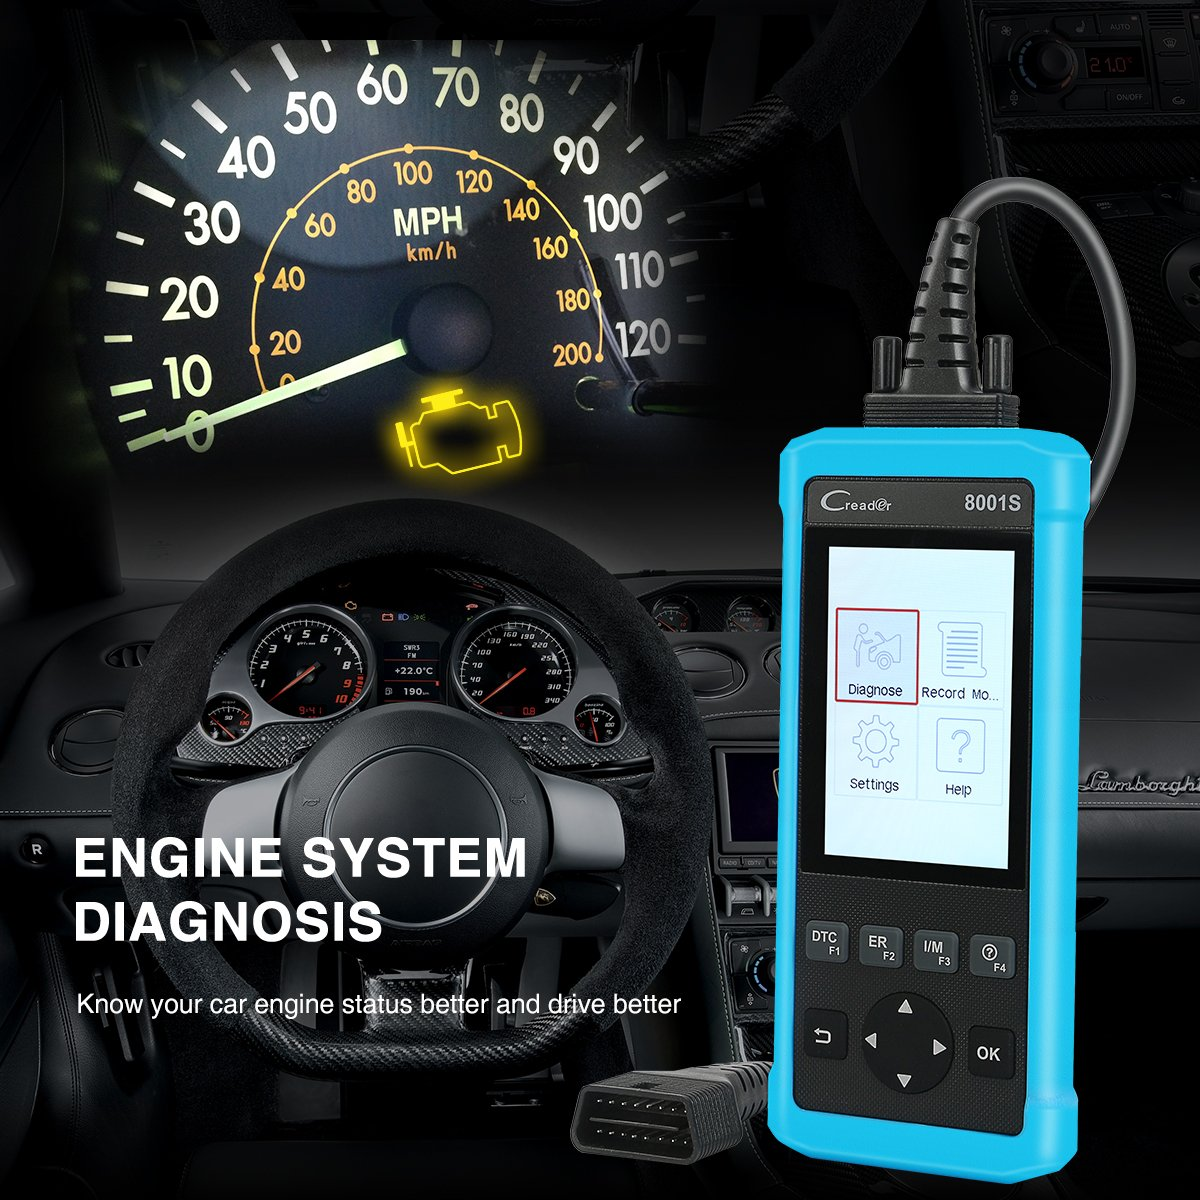 LAUNCH CR8001S Auto Scan Tool Code Reader Diagnostic OBD2 Scanner with ABS, SRS, Engine and Transmission Diagnoses and Oil Light Reset, EPB, SAS, BMS Reset by LAUNCH (Image #5)